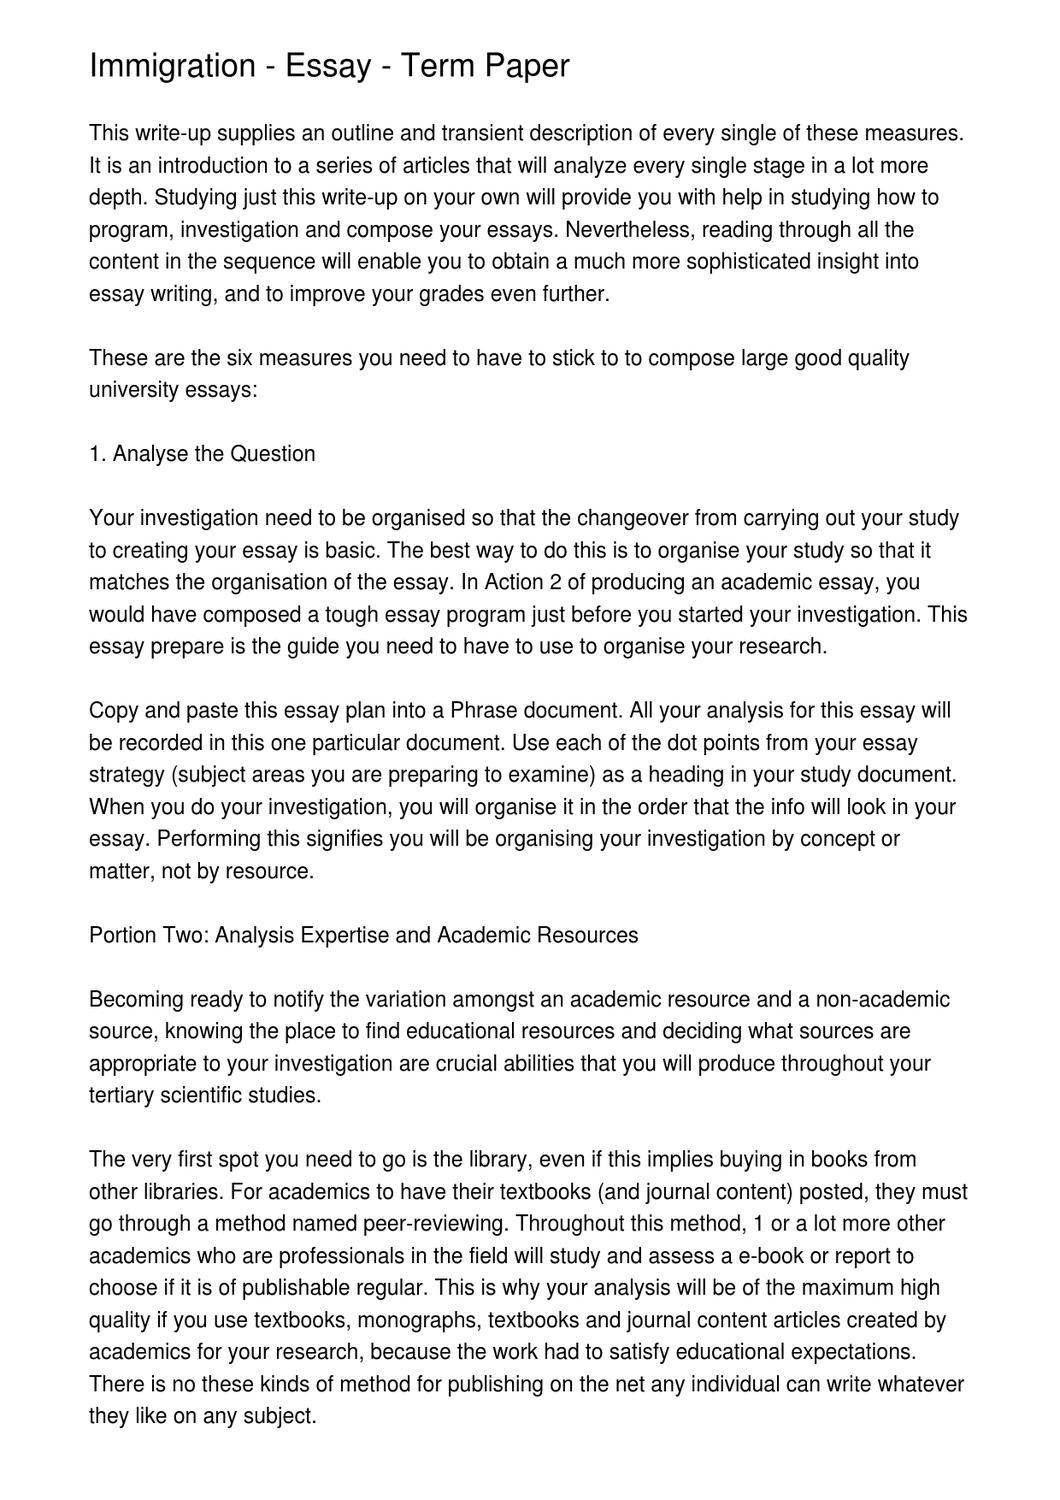 Essay Of City Life  Teenage Pregnancy Argumentative Essay also Essay On Violence Immigration  Essay  Term Paper By Dow Hess  Issuu Well Structured Essay